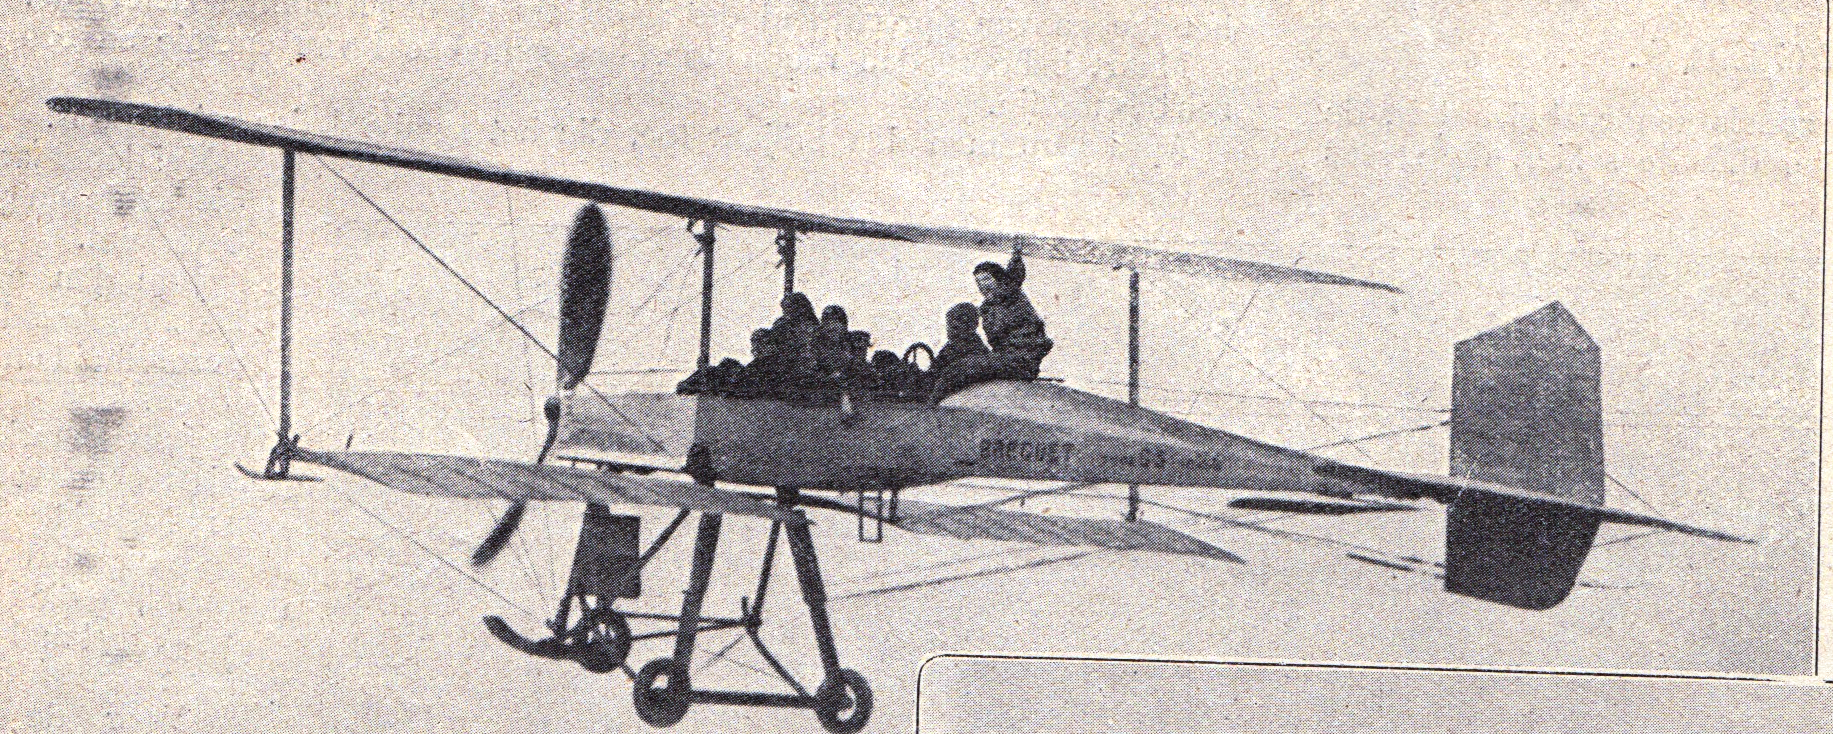 The Frenchman Louis Breguet with around 10 passengers in his plane above the airport of Douai on March 11, 1911. The plane was airborne around 10 minutes with speeds up to 100 km/h. The Type IV was first flown in 1911, and was the first Breguet aircraft to be produced in quantity. It was used by the French Army, the R.F.C.. and Siam's Army Air Unit. It is notable for the extensive use of metal in its construction, unusual in an aircraft of its time.